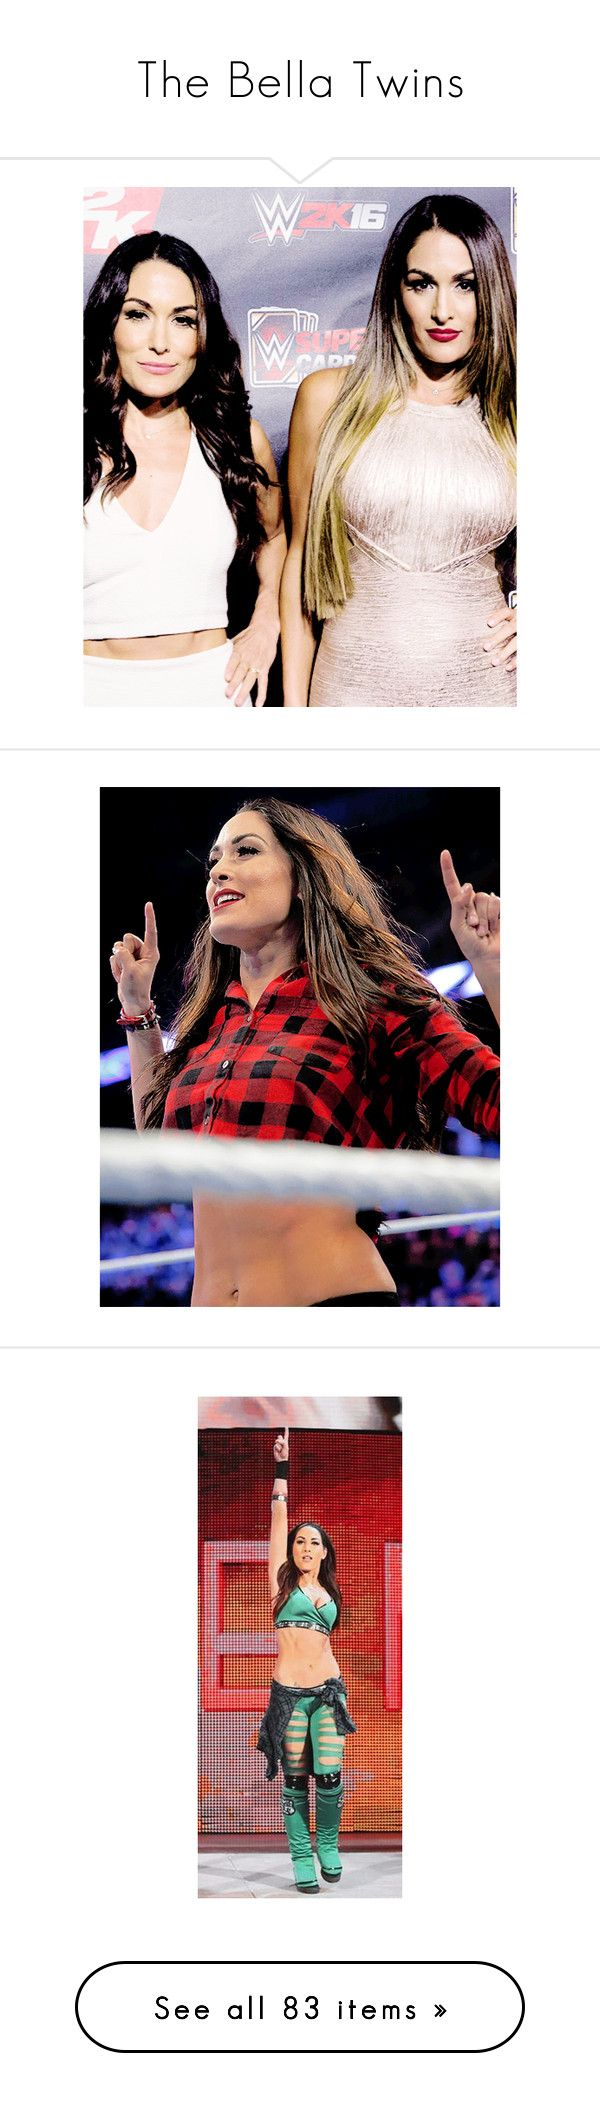 """""""The Bella Twins"""" by amysykes-697 ❤ liked on Polyvore featuring jewelry, rings, divas, the bella twins, wwe, tops, blue top, red top, brie bella and home"""